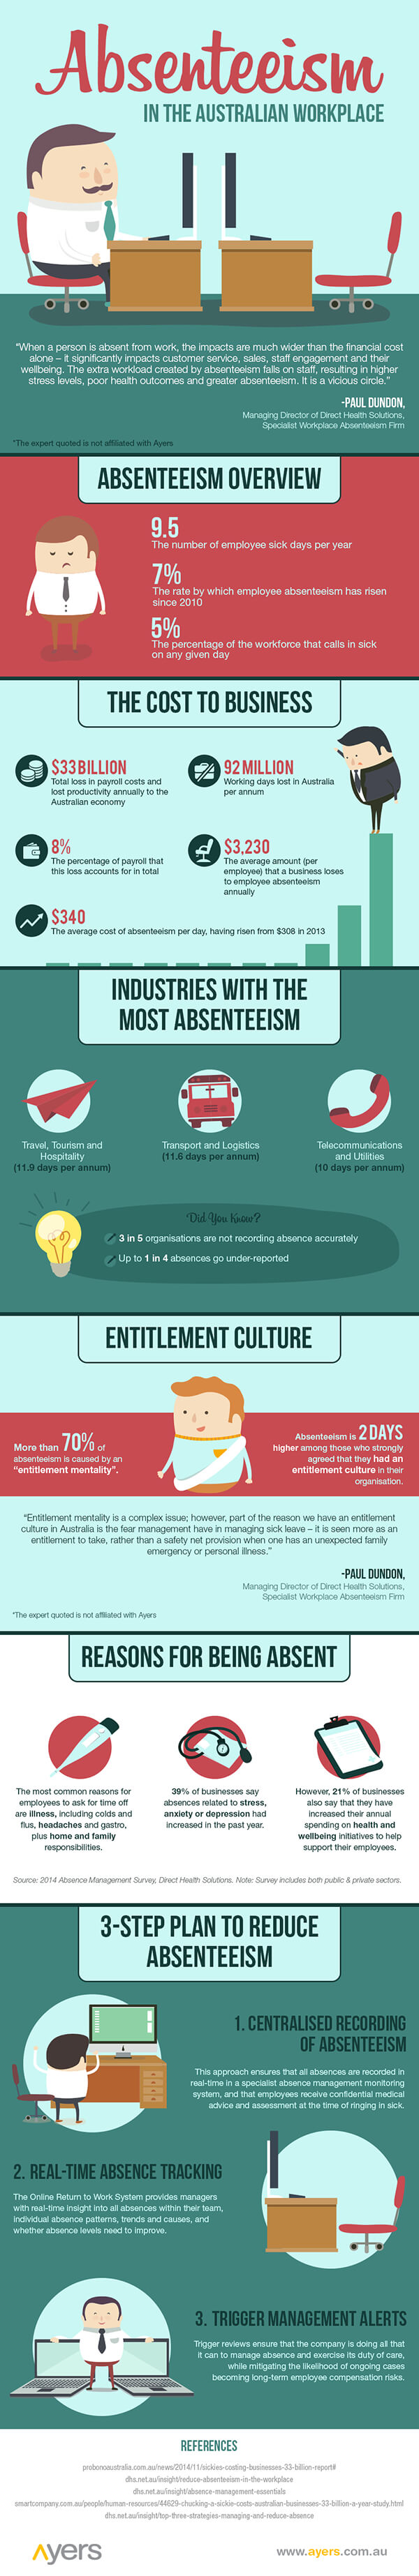 Absenteeism infographic